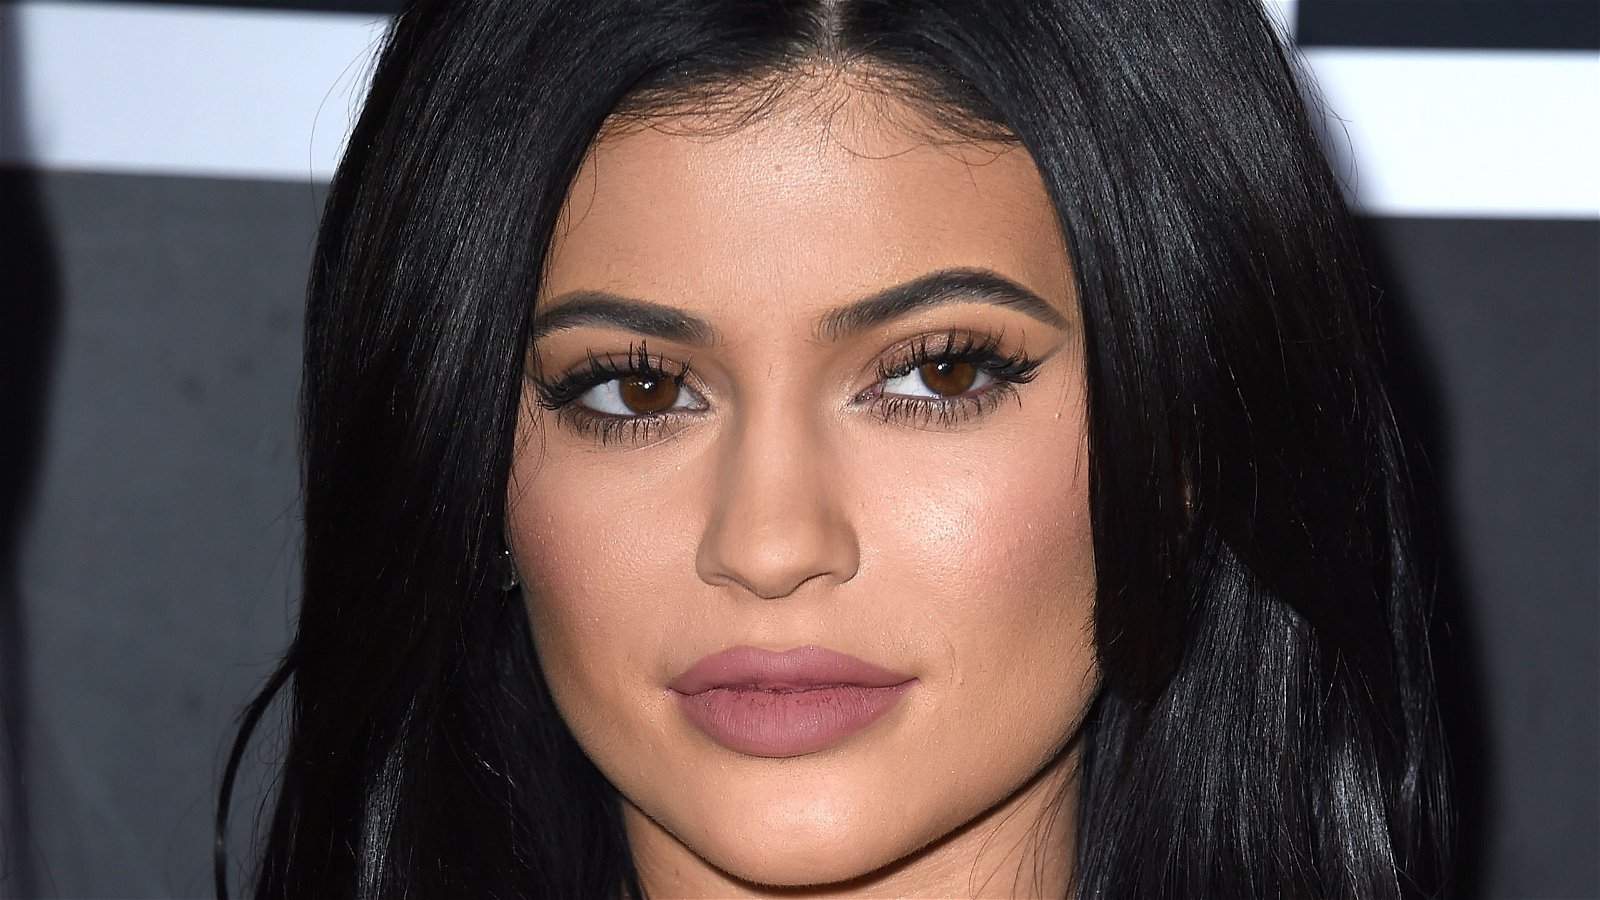 Where Did Kylie Jenner Go to College?